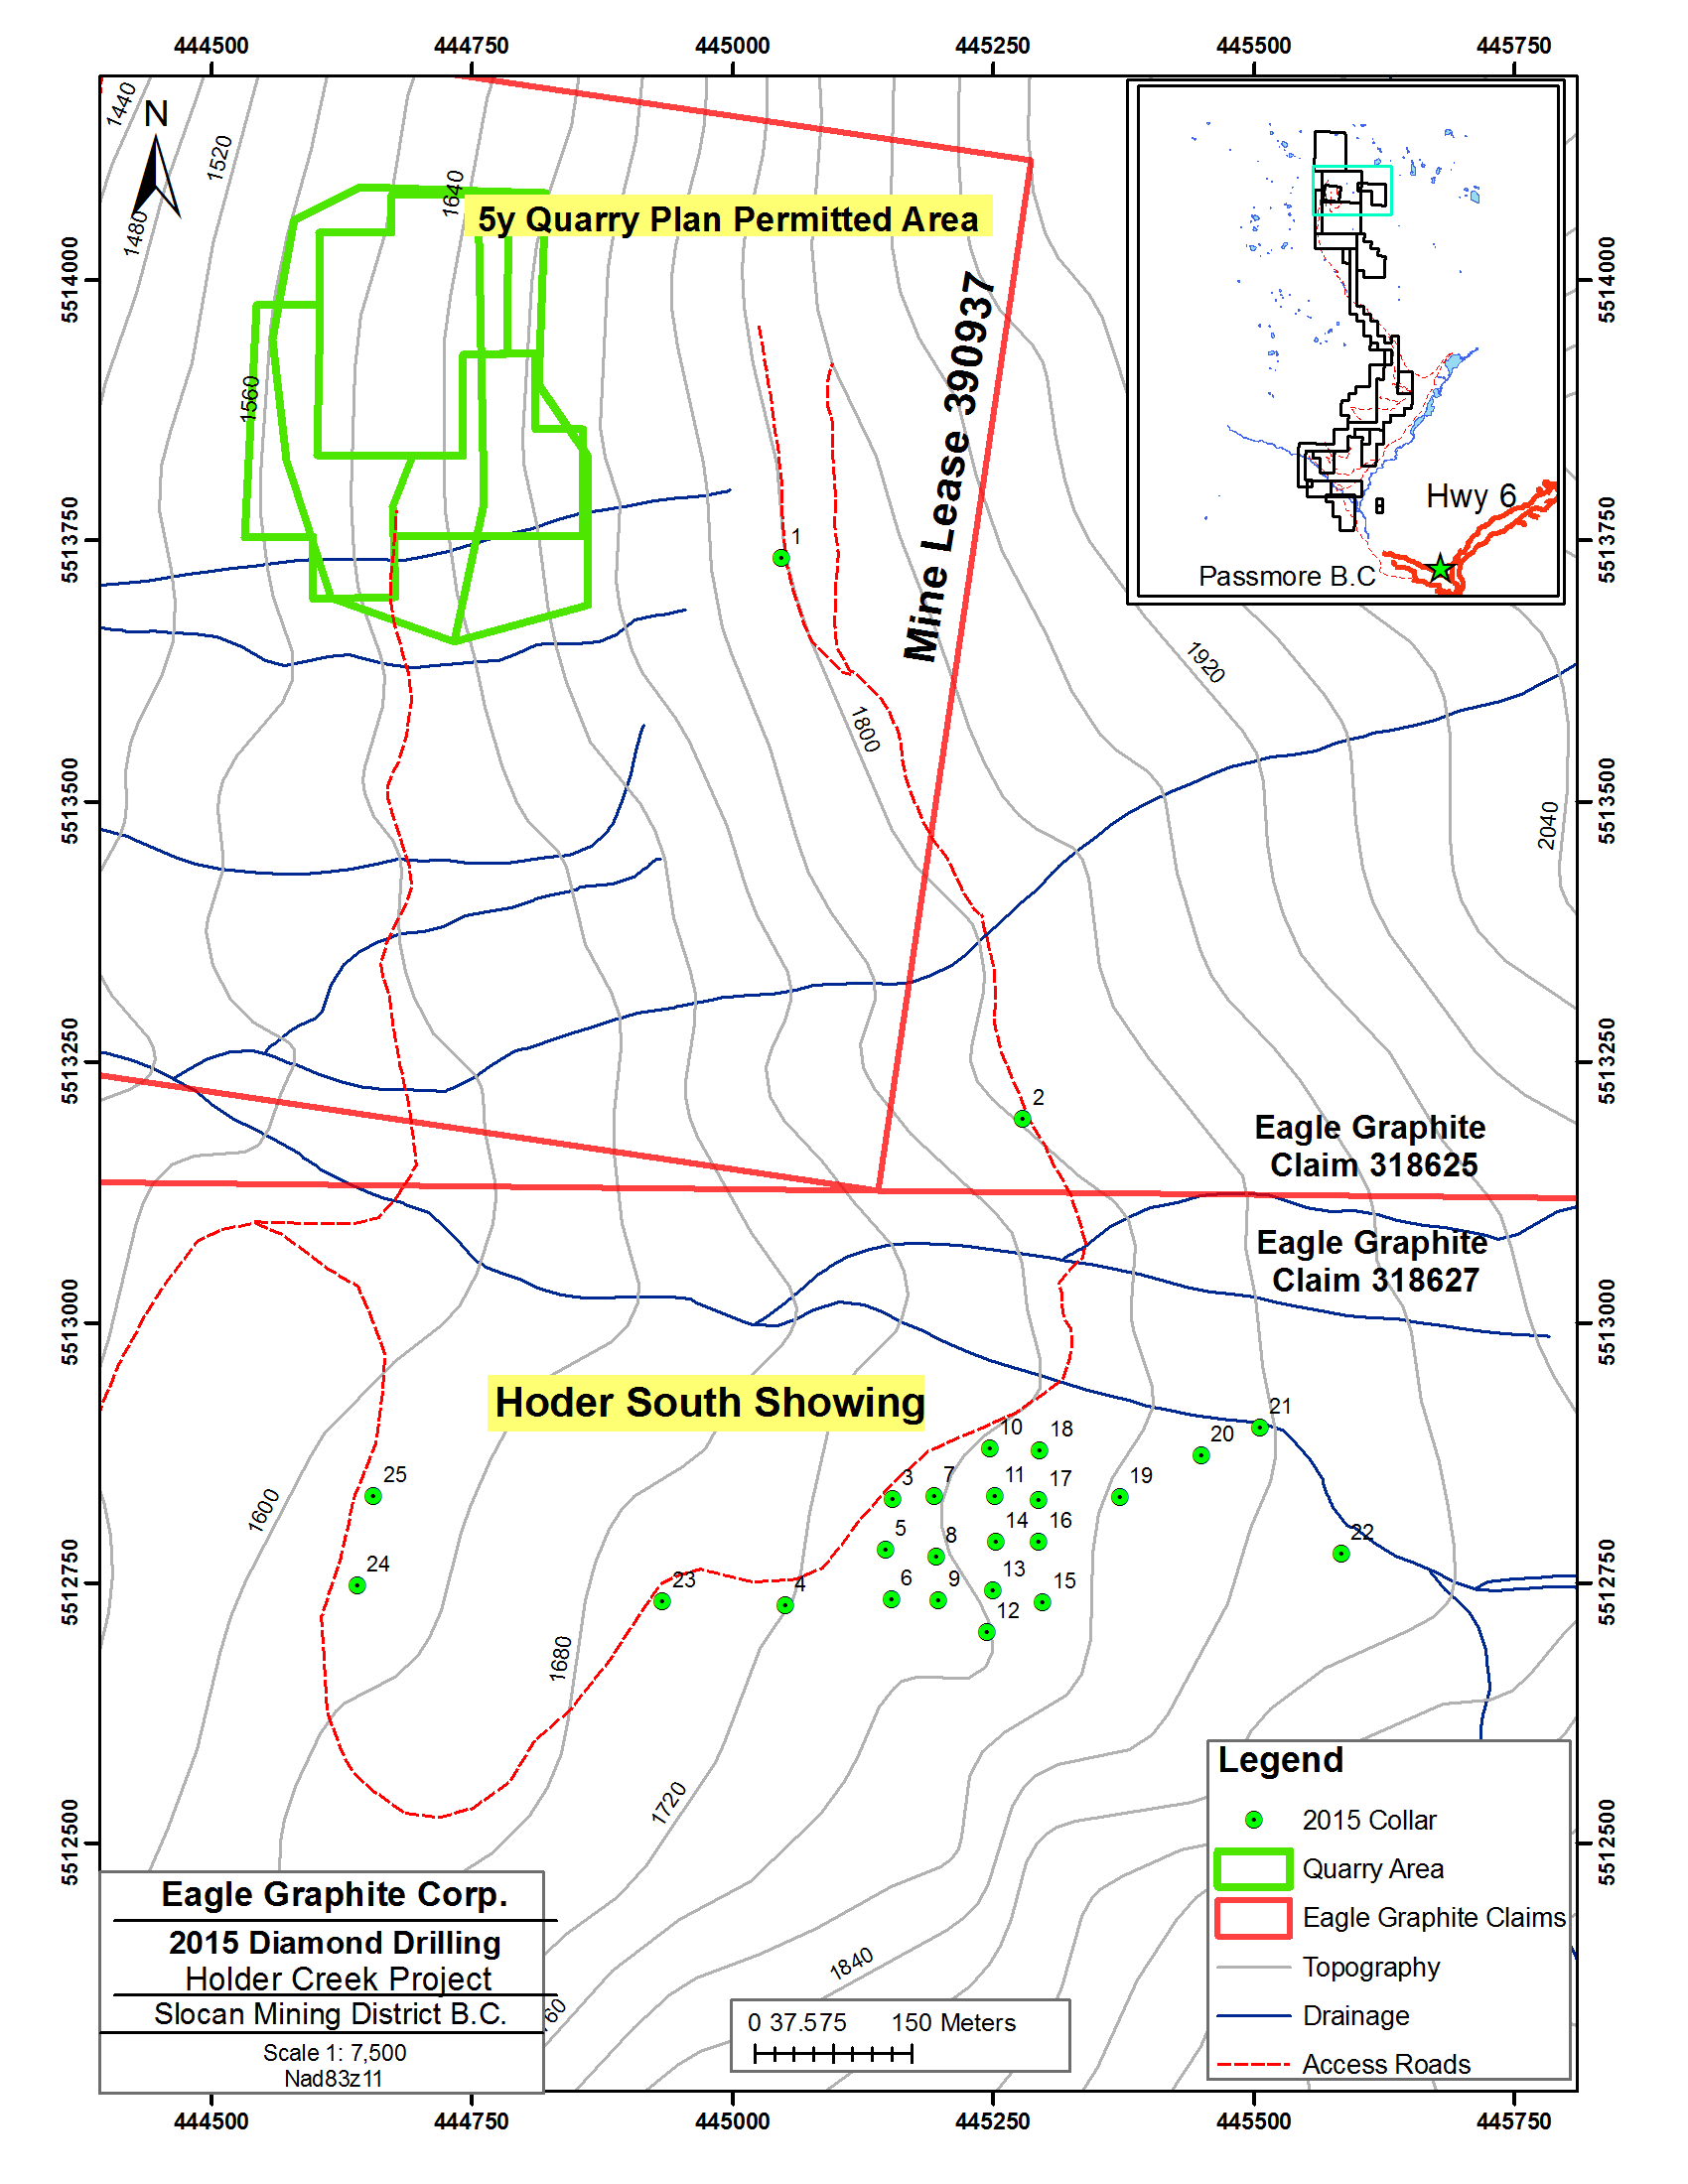 Hoder Creek drilling 2015 location map vWeb1